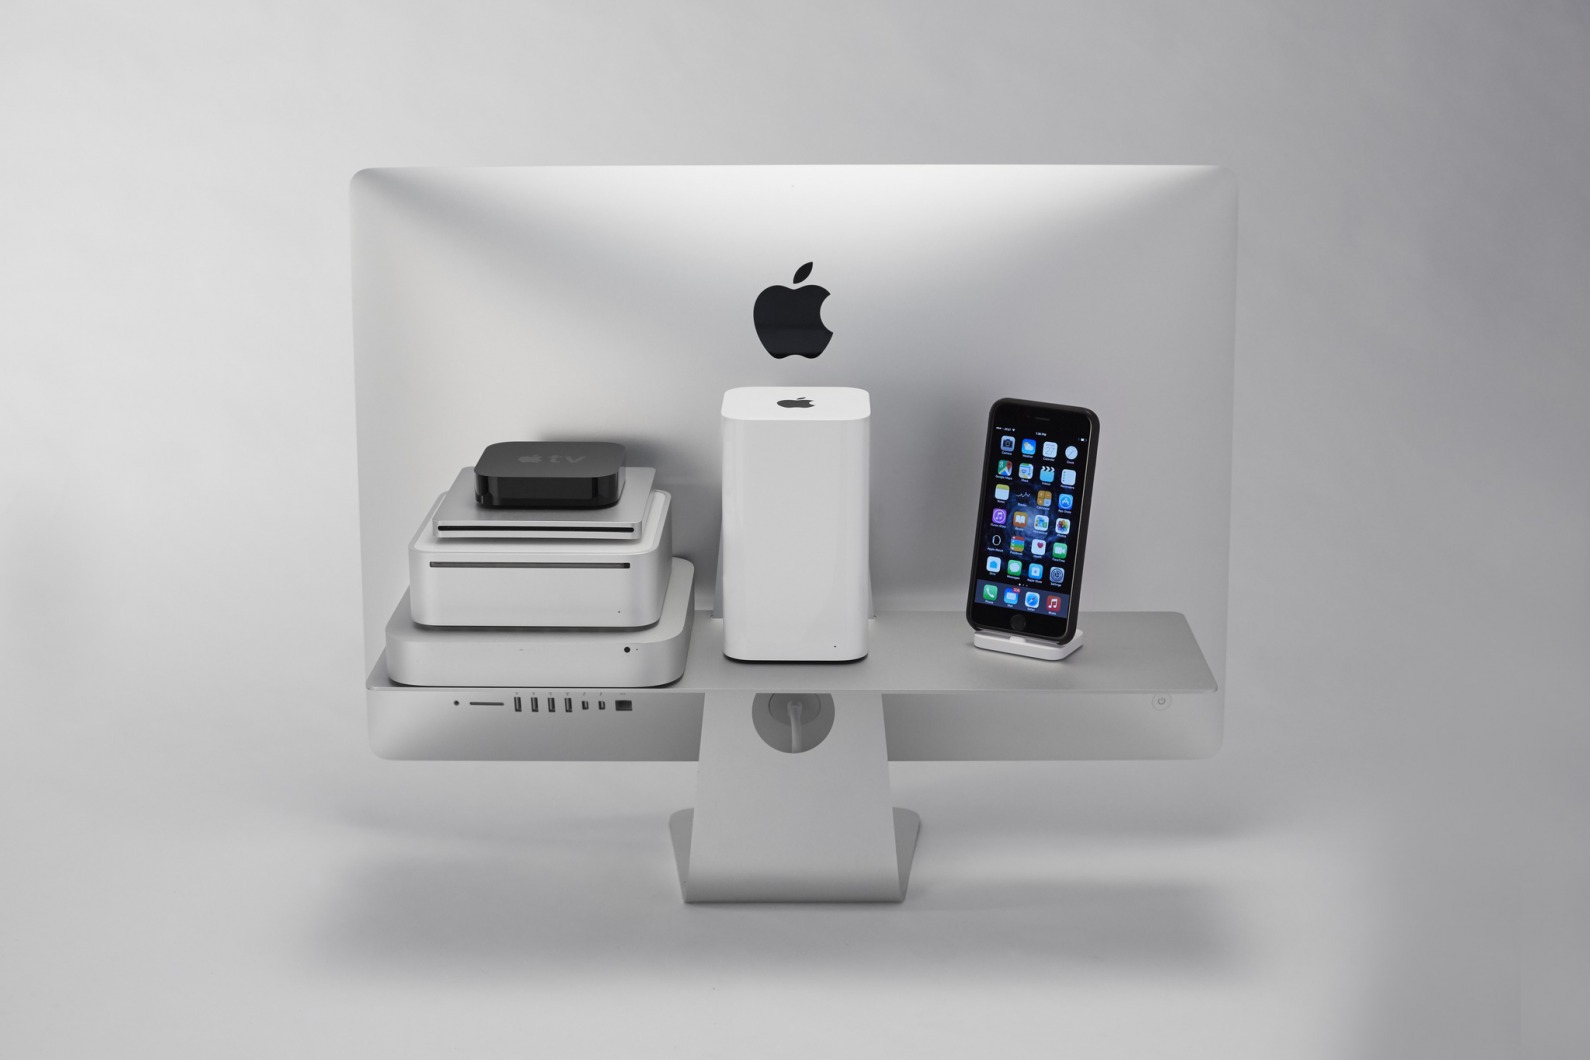 Review Declutter Your Desk with This Cool iMac Shelf iPhoneLifecom